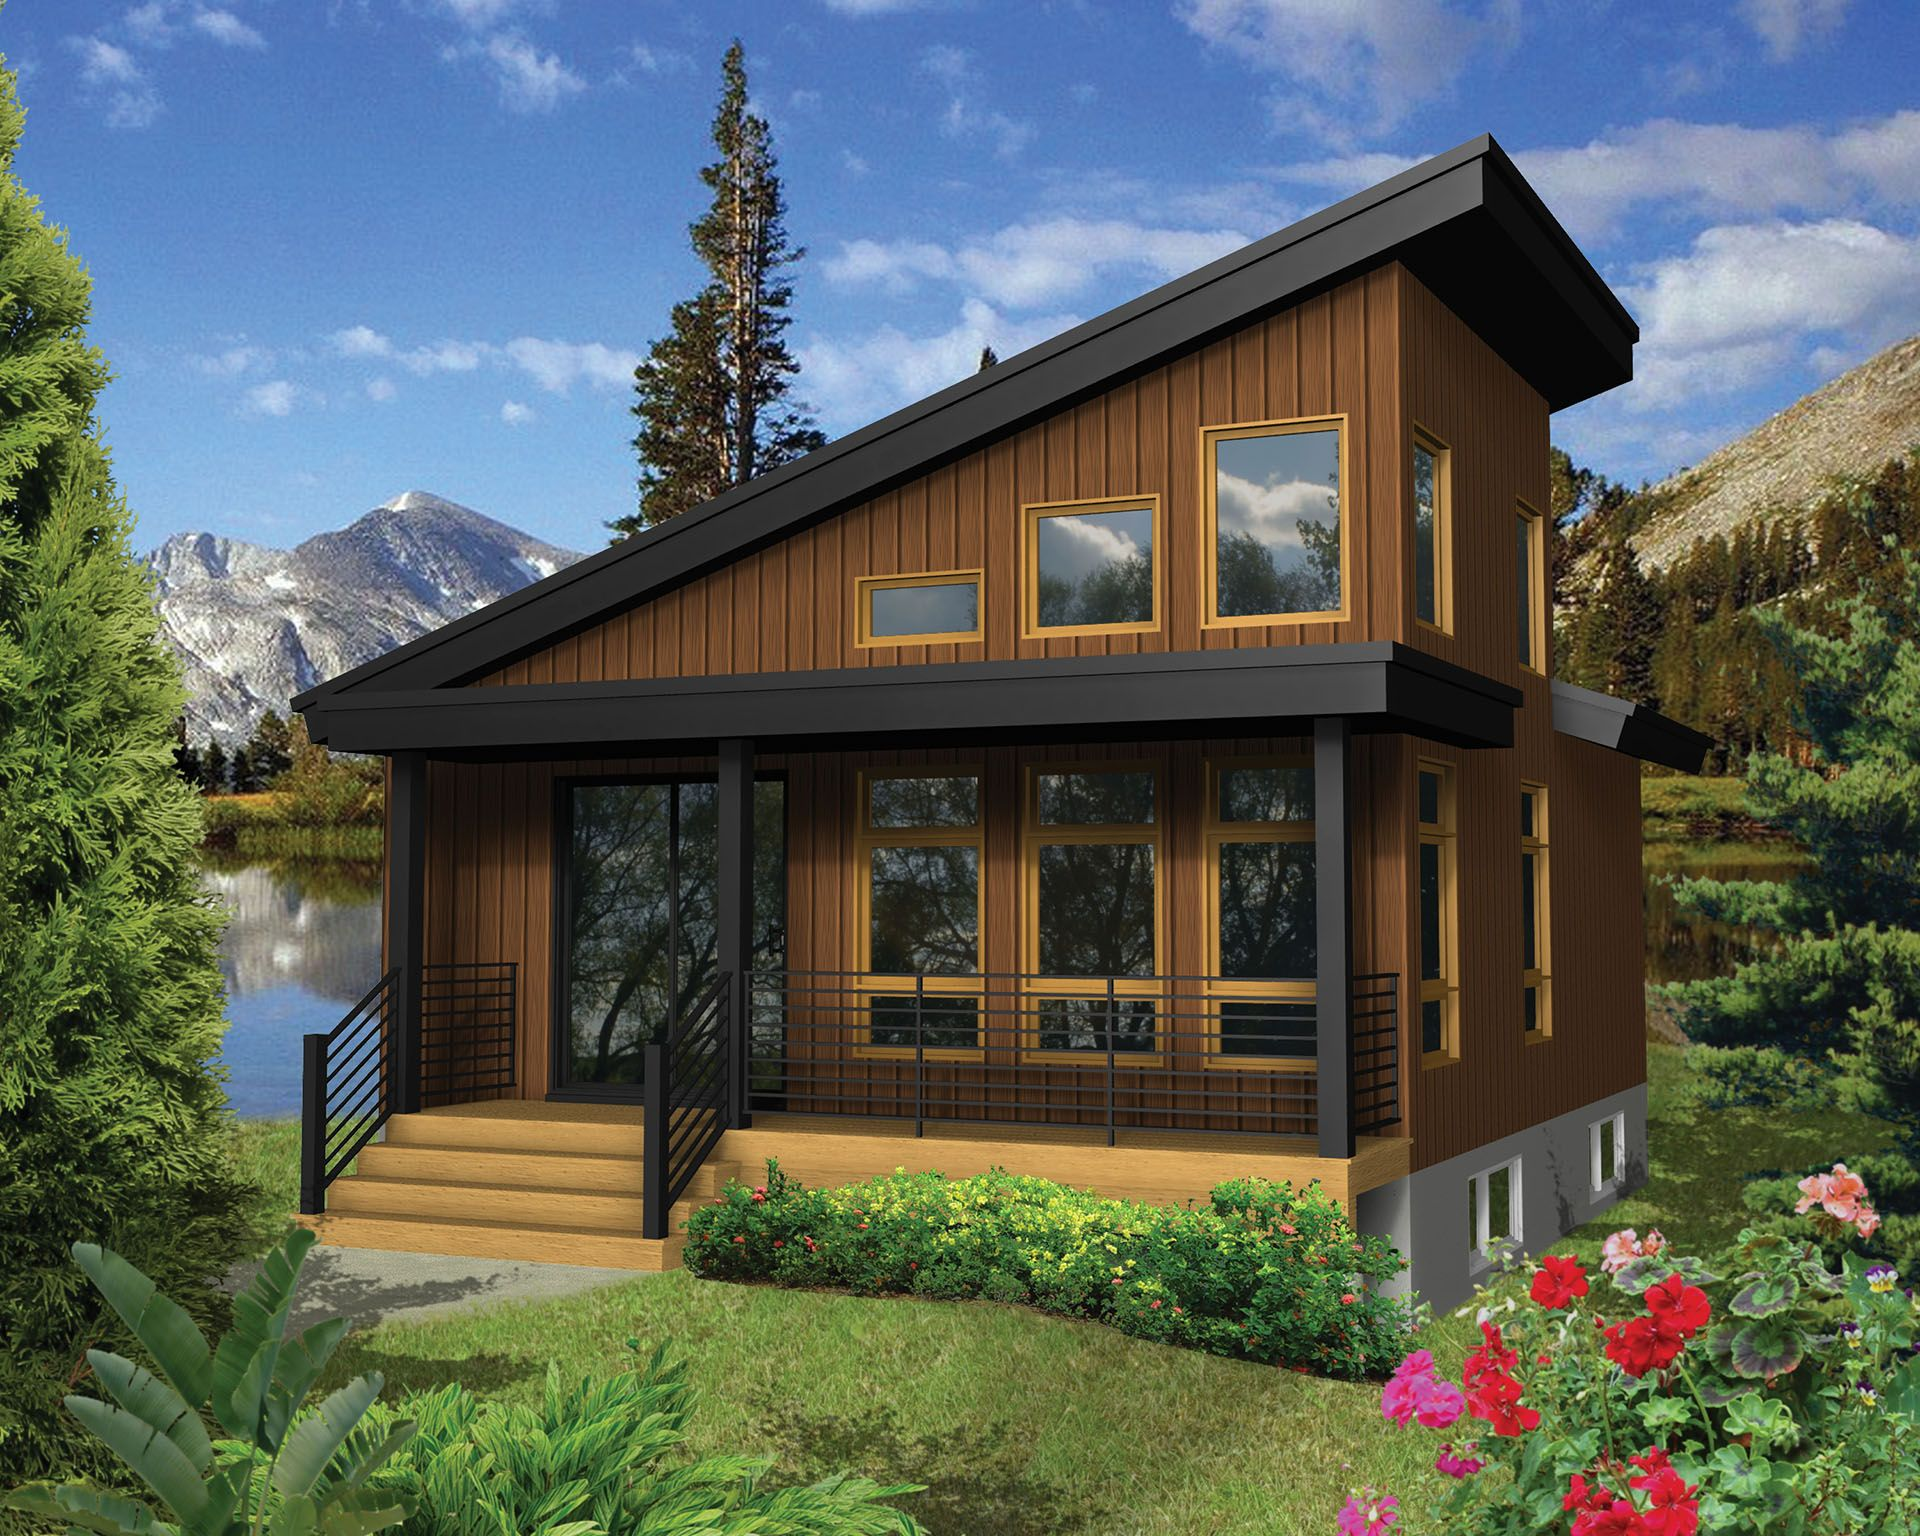 Plan 80813pm Modern Escape With Dramatic Roofline Vacation House Plans Contemporary House Plans Cabin Design